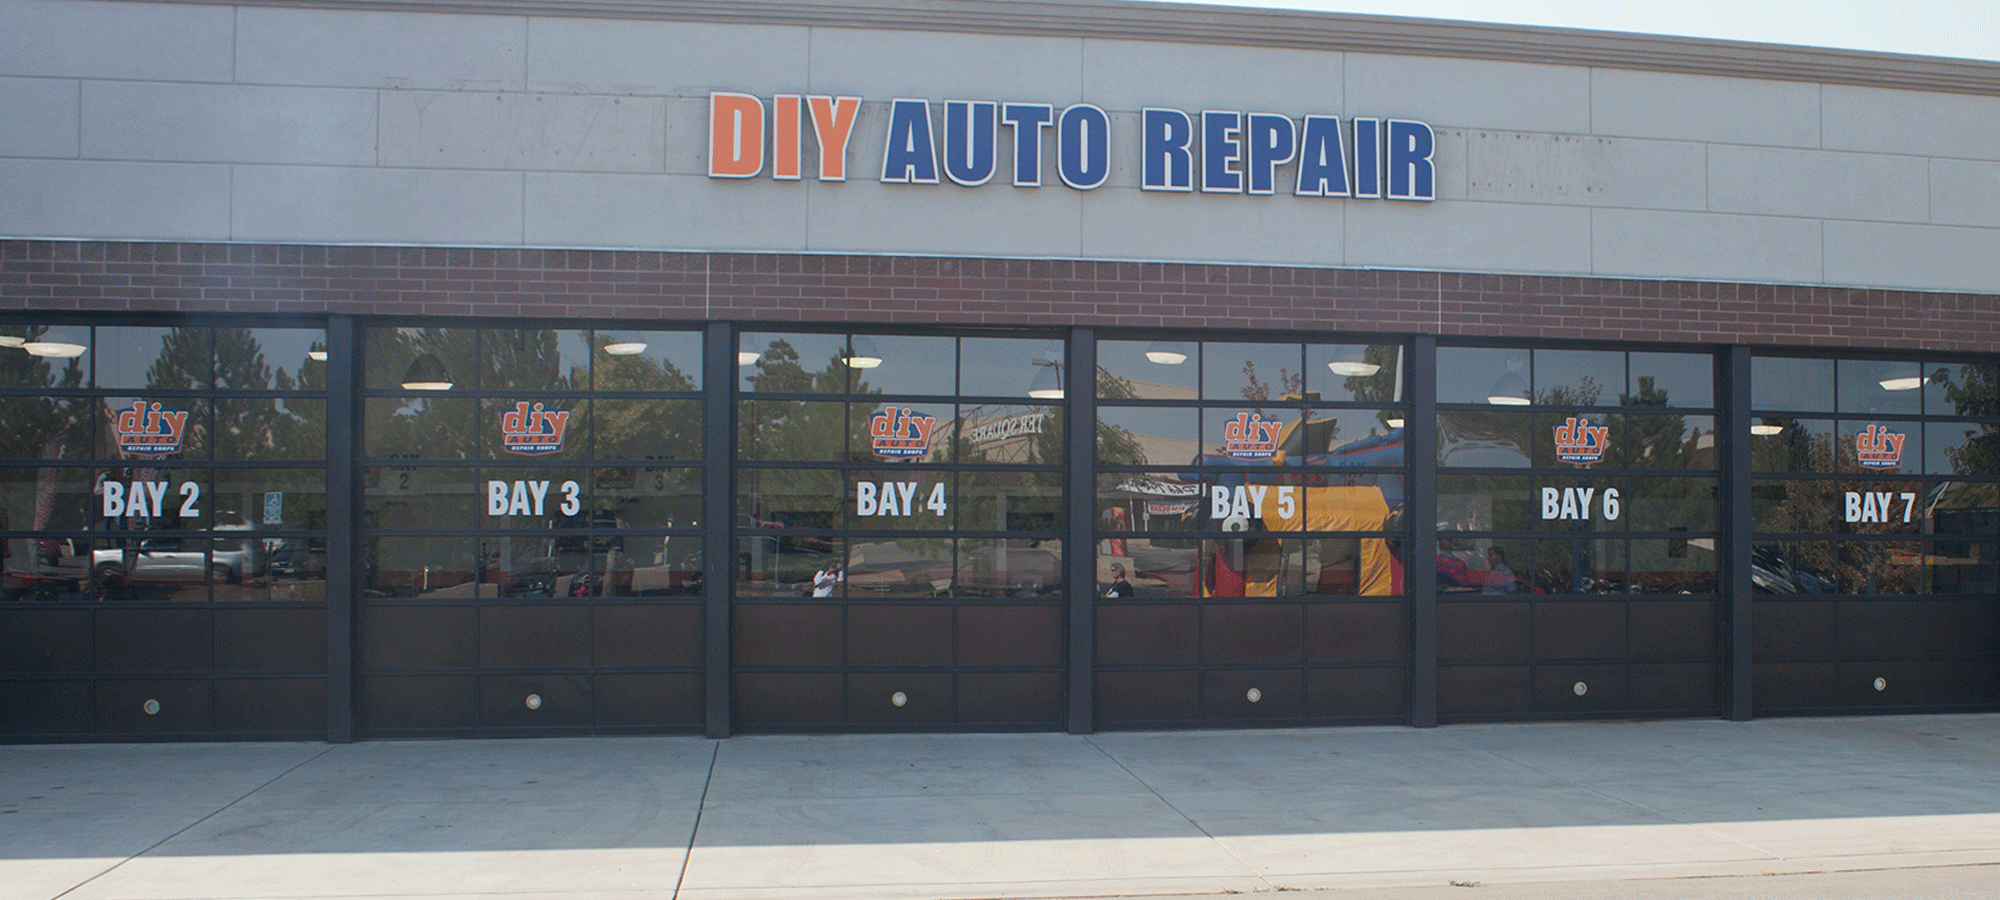 Diy auto repair shops equipped self service garage bays diy auto repair bays for rent solutioingenieria Gallery